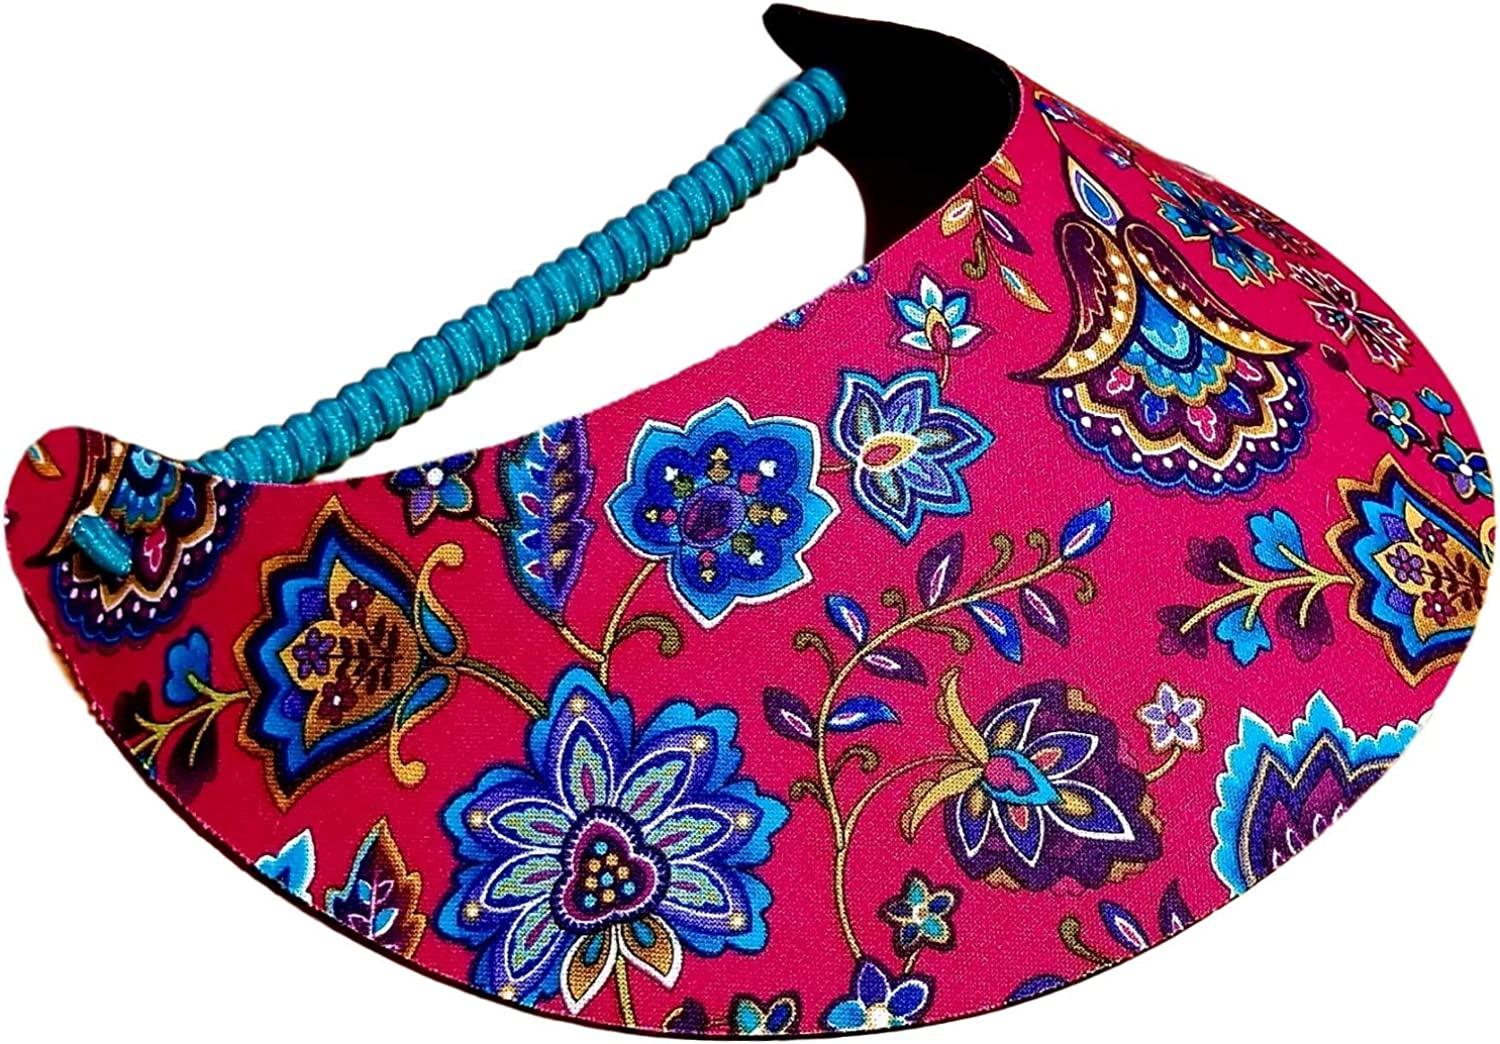 The Incredible Sunvisor Flower Patterns Perfect for Summer Made in The USA!!